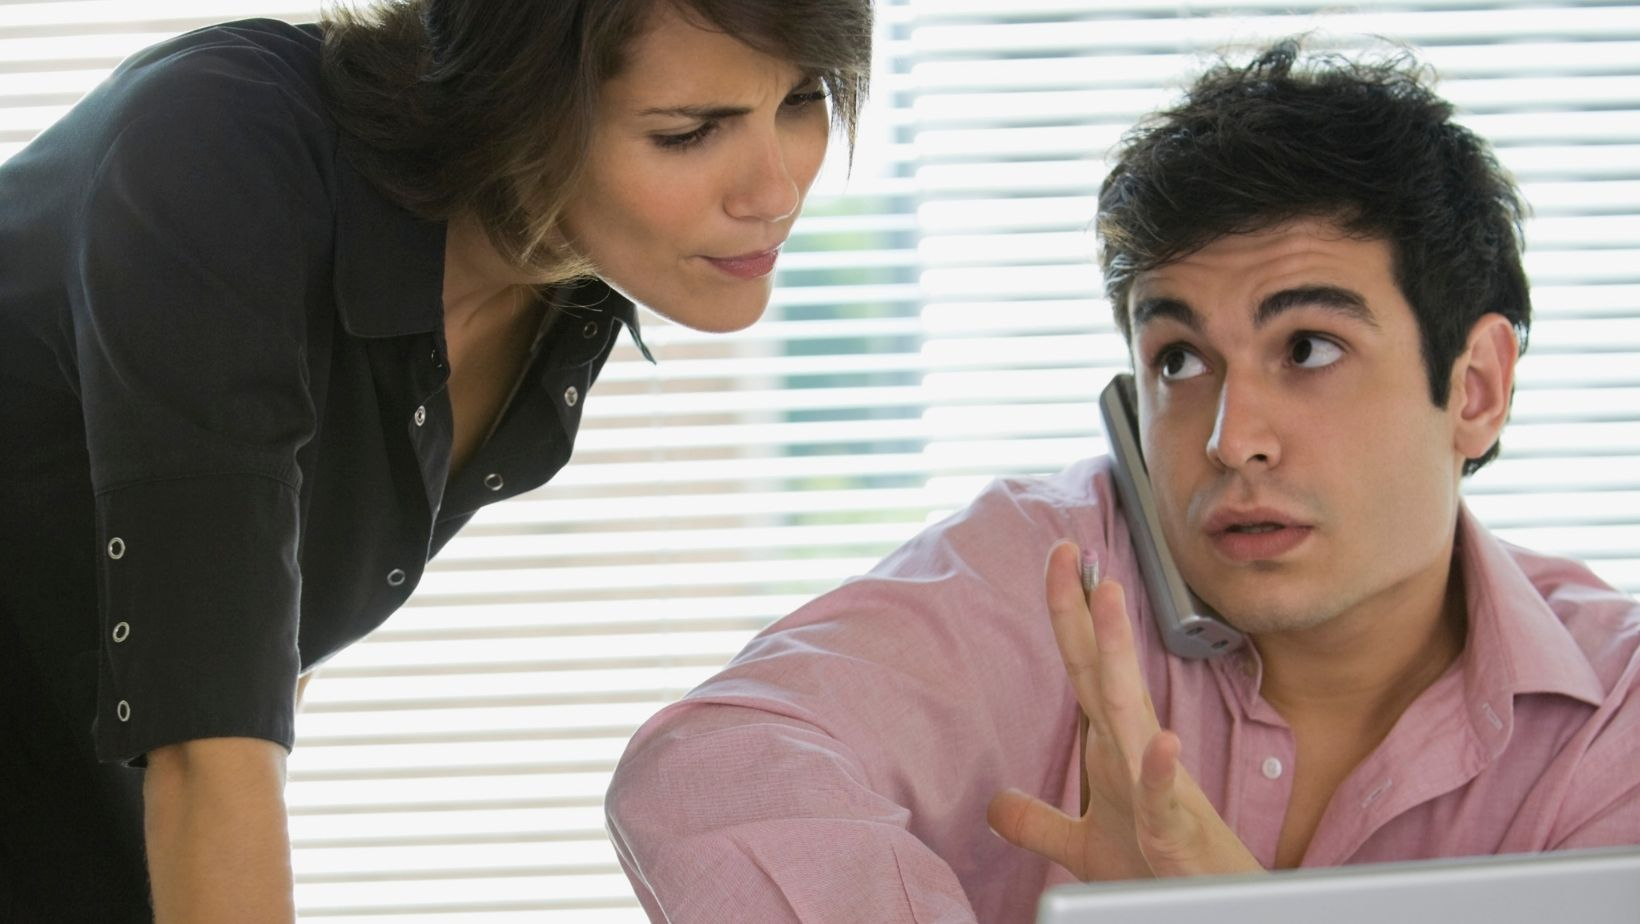 Employee interrupts coworker during phone call